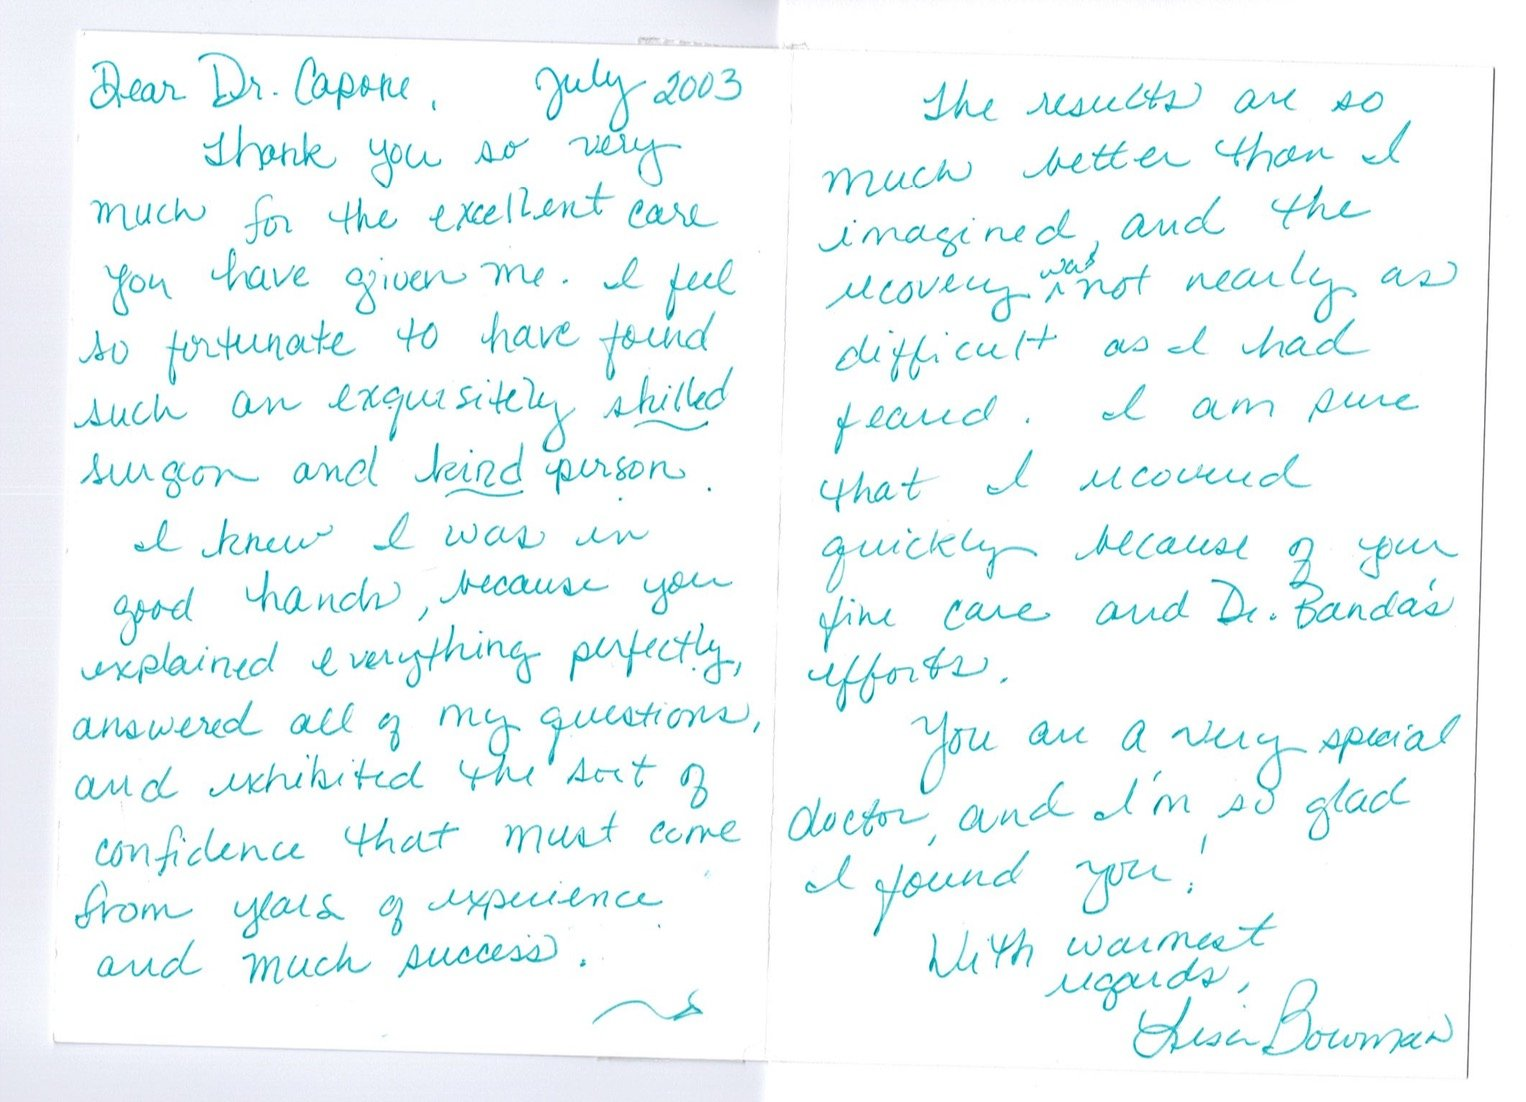 Letter of Thanks to Doctor and Staffer by Sarah